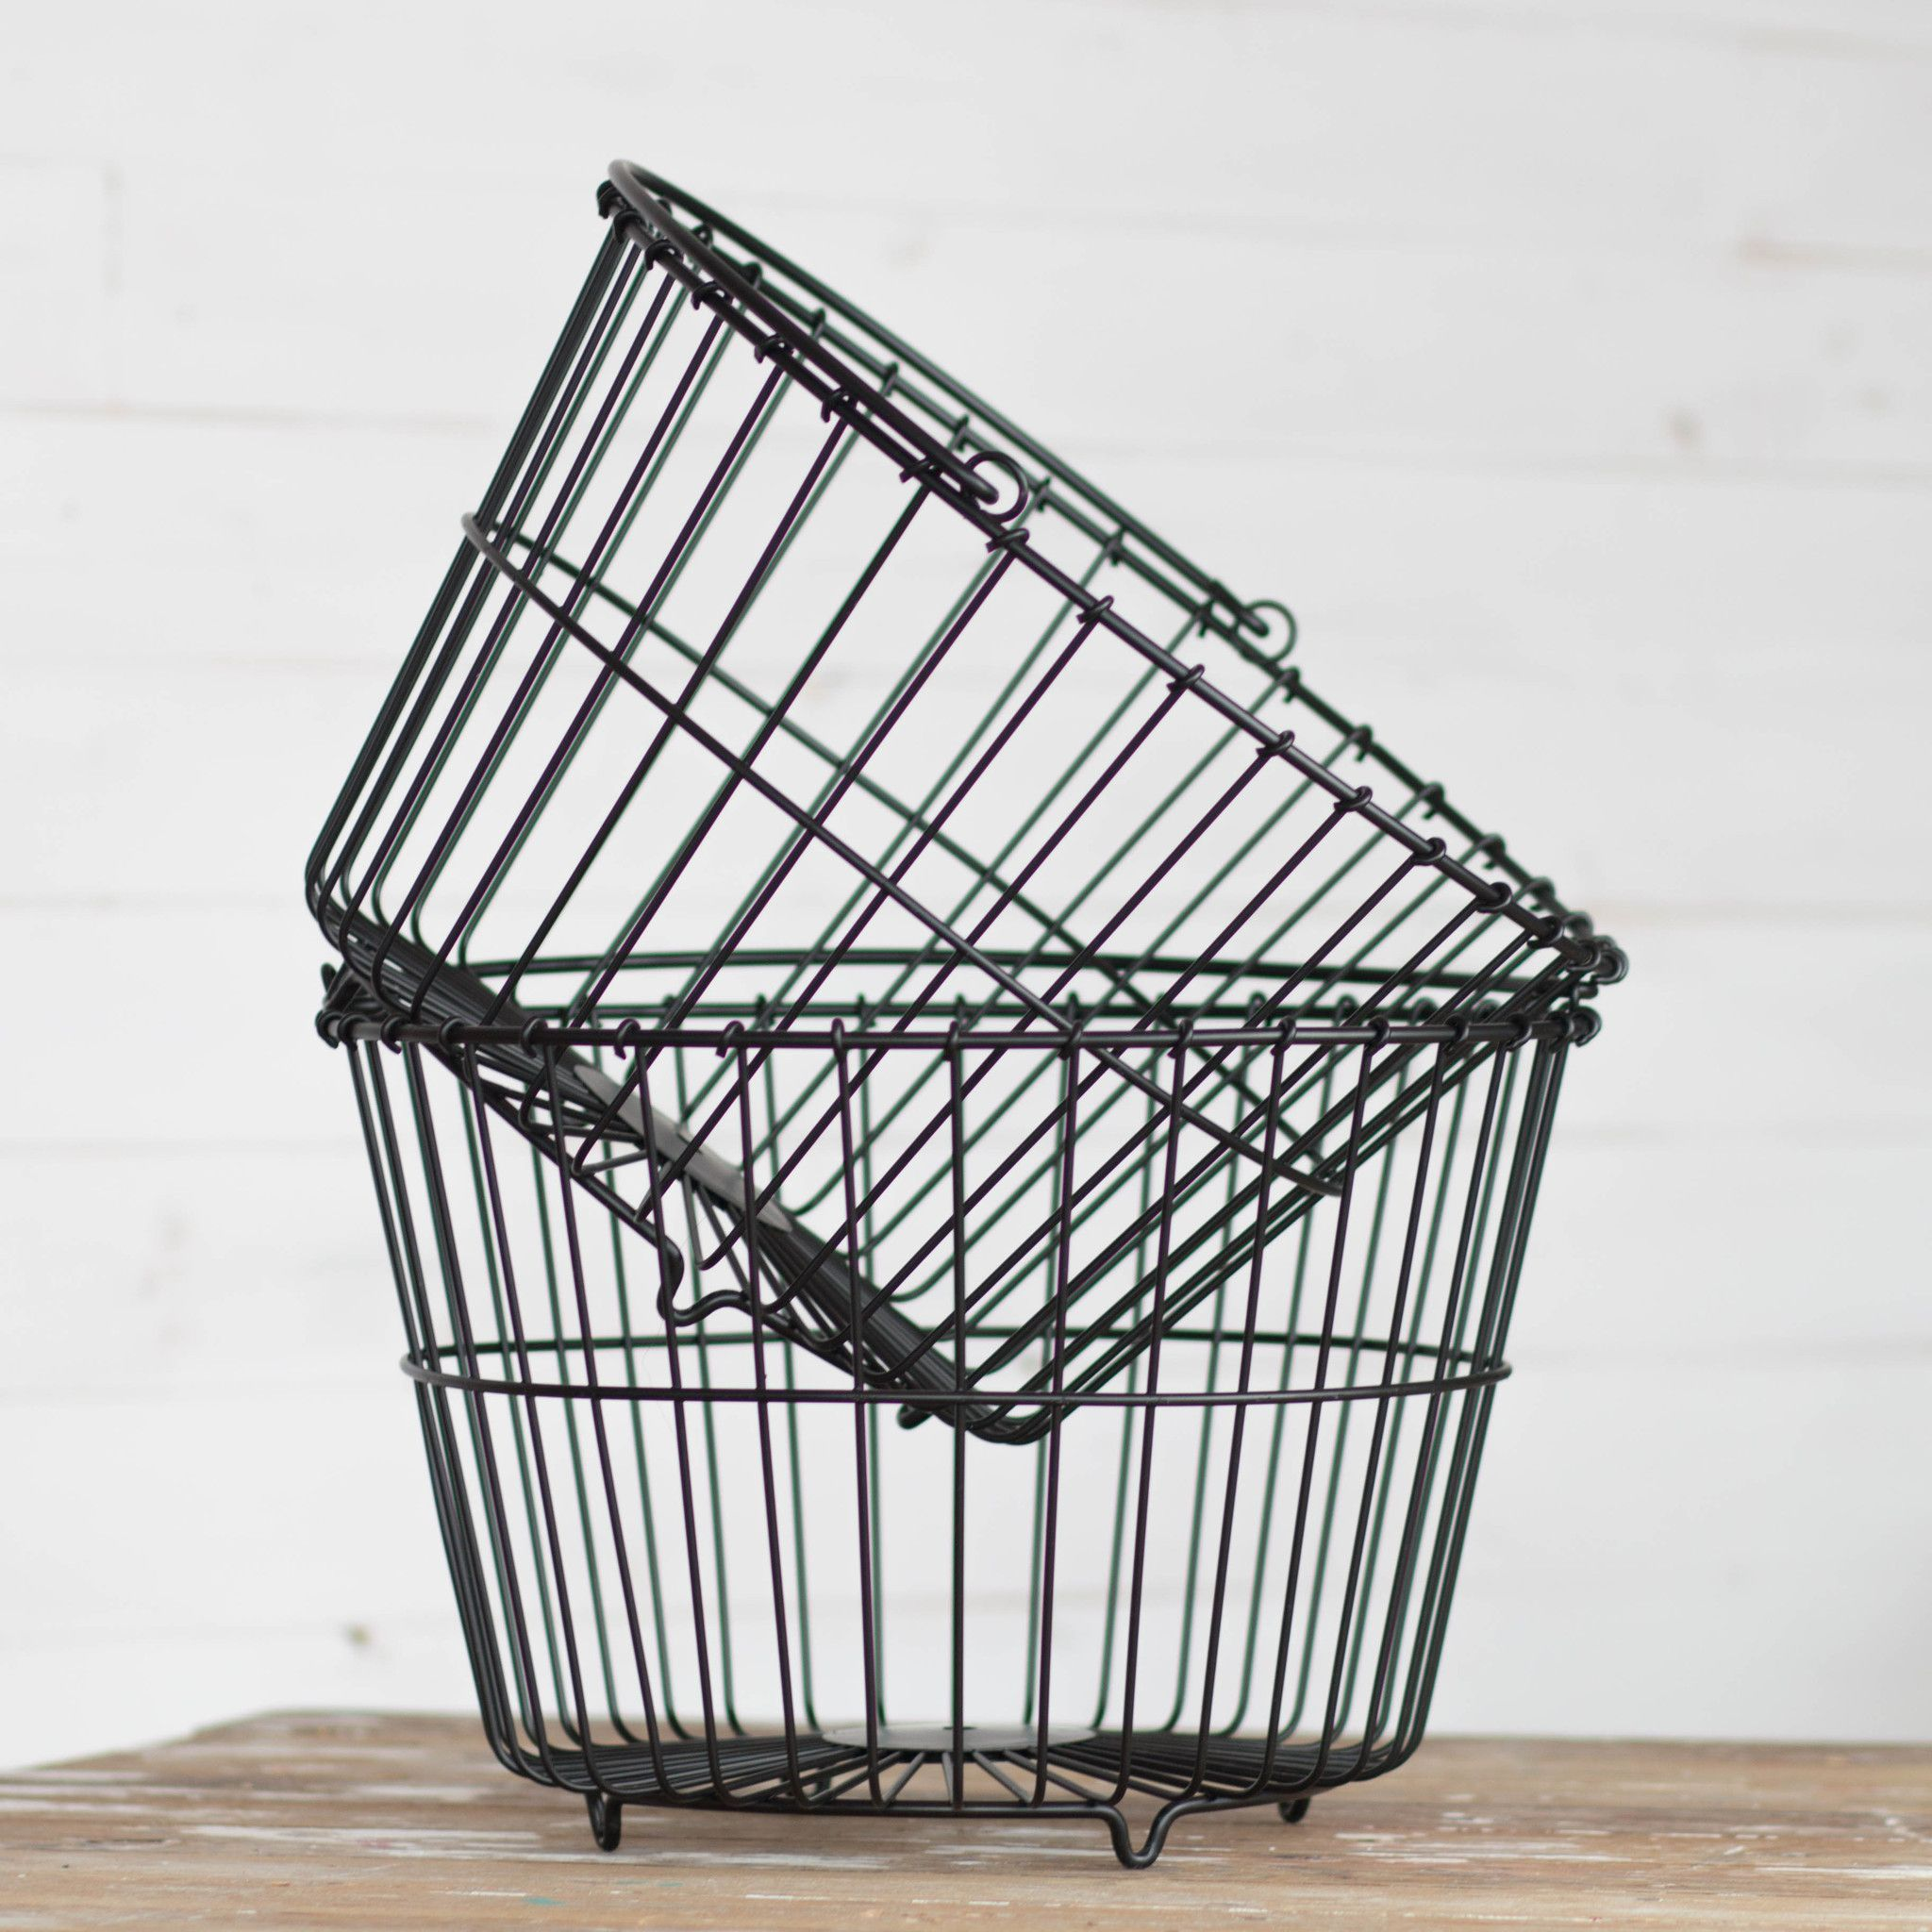 Contain The Mess The Perfect Modern Industrial Basket For Your